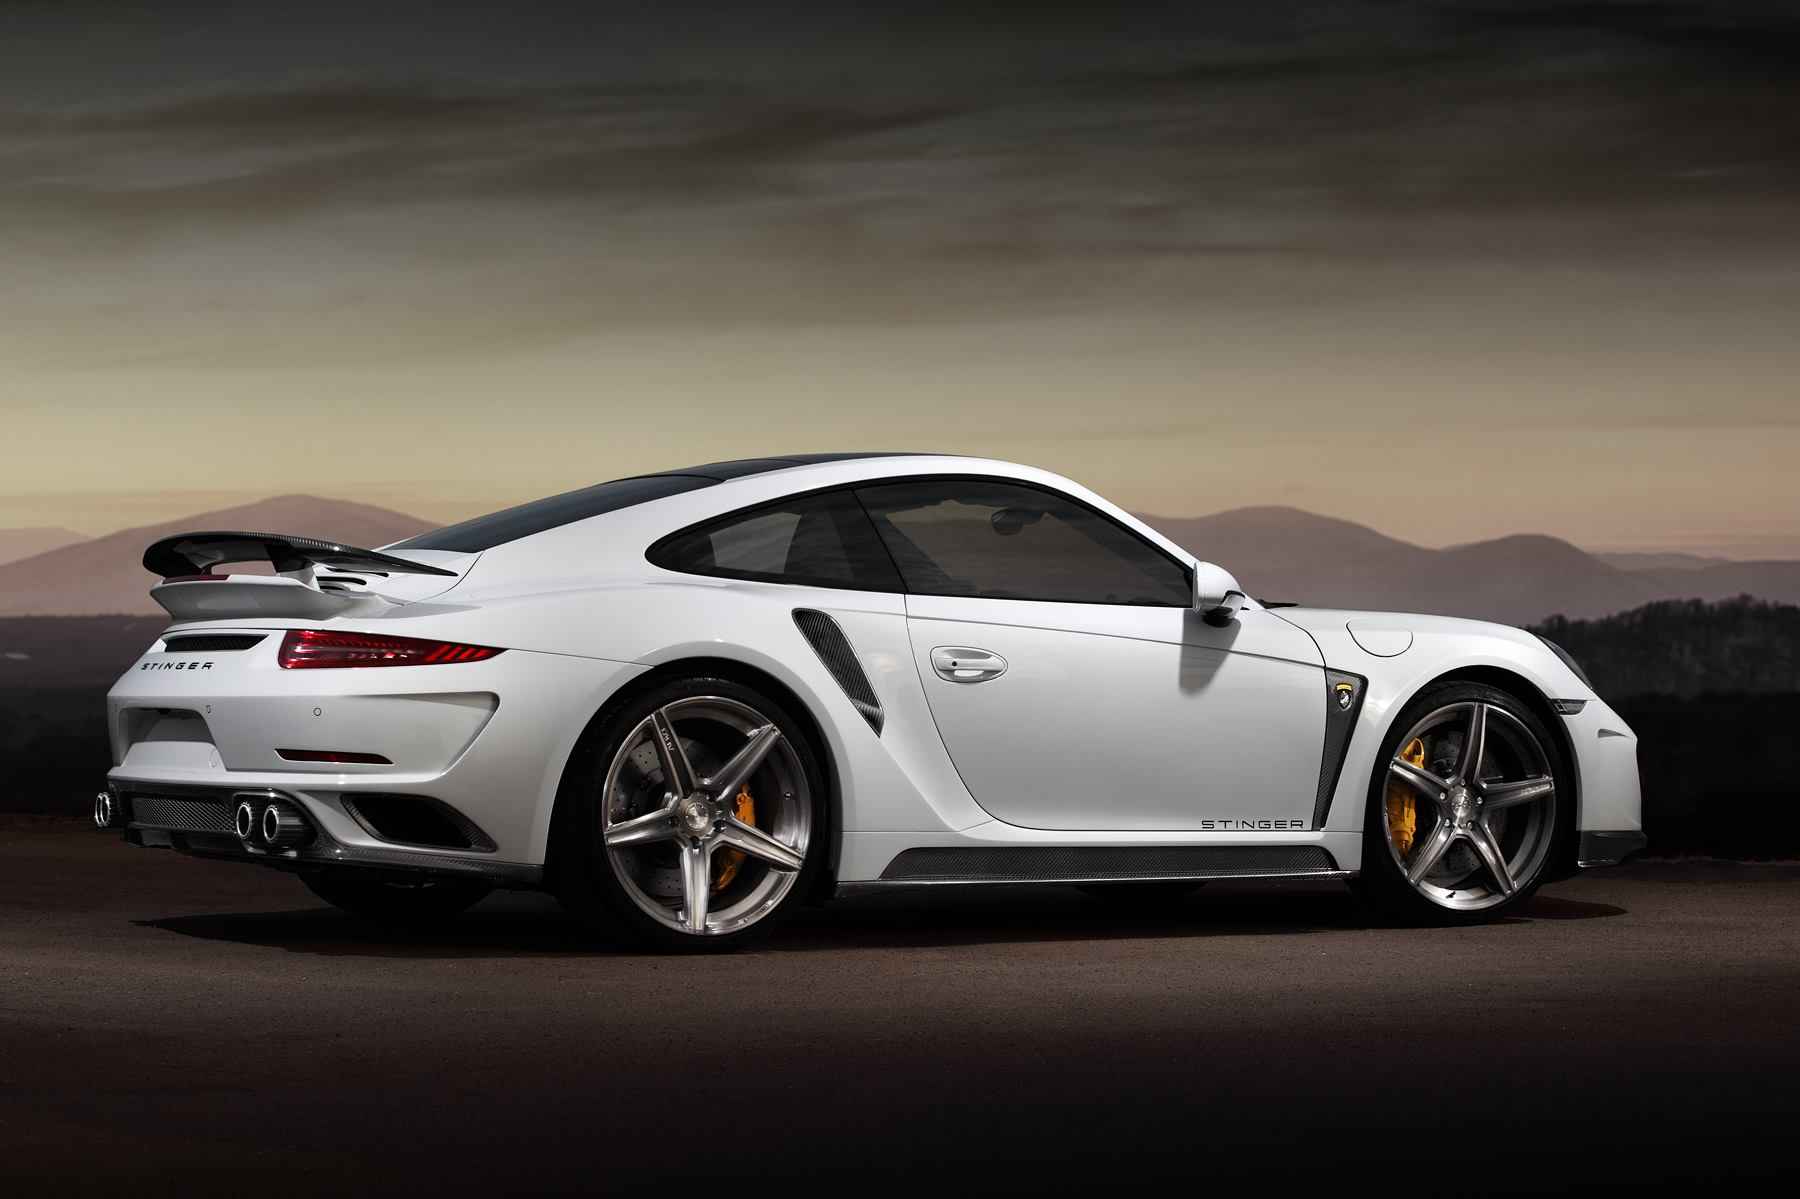 Tuningcars Porsche 911 Turbo Stinger Gtr By Topcar Has